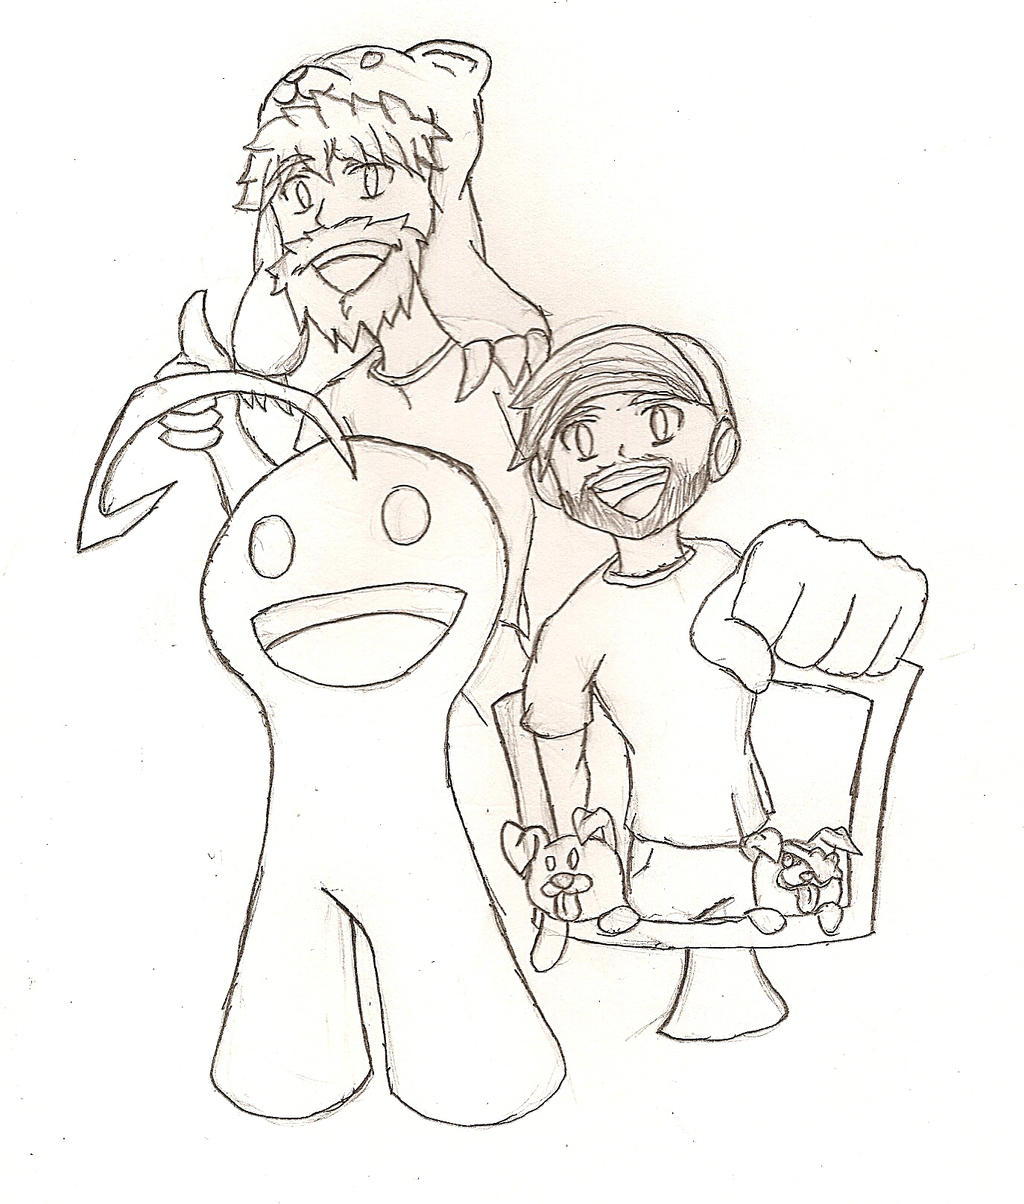 Pewds, Cry, CTK, Edgar, and Maya(Pugachan) Sketch by NeonNeoz